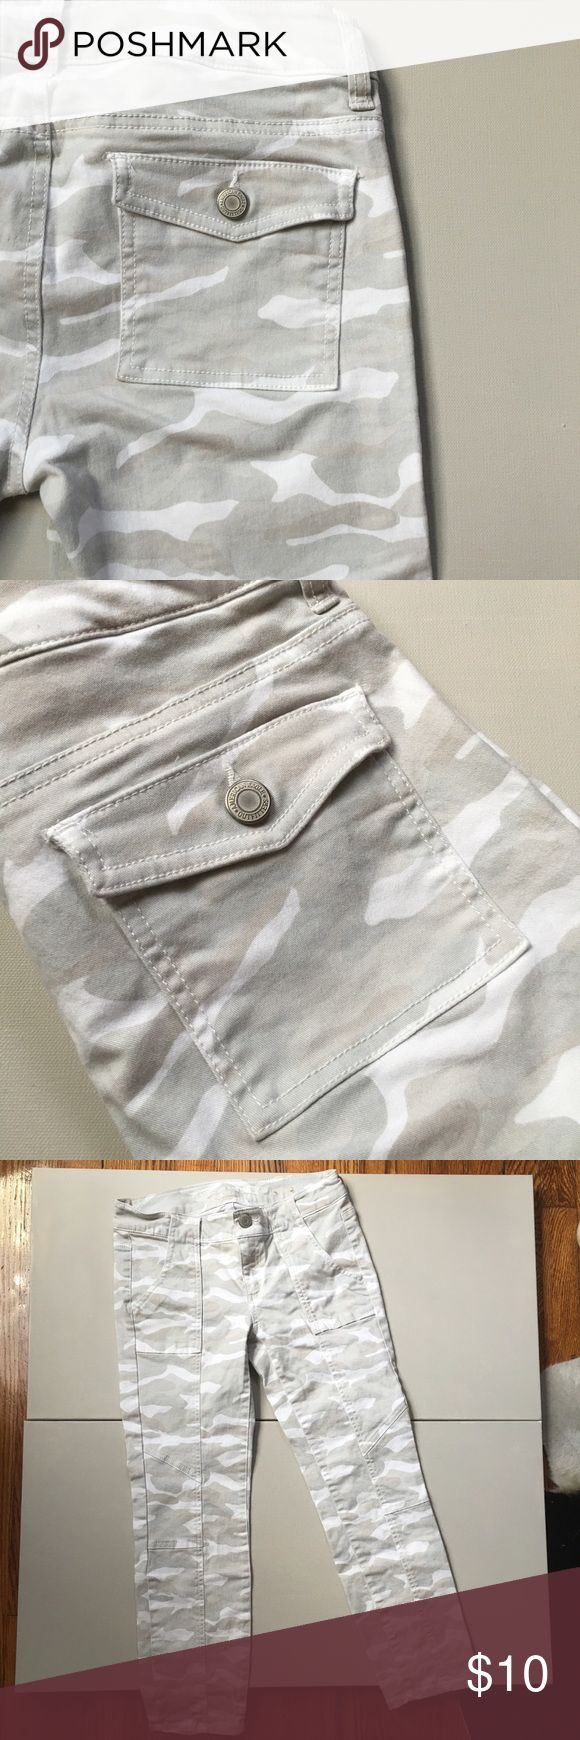 [ American Eagle ] Cargo Capri  Listing! Gently used. No stains or damage. Cargo style stitching in front. 97% cotton 3% elastane. Skinny fit Size 0 - true to size. Nice color, soft and lightweight. American Eagle Outfitters Jeans